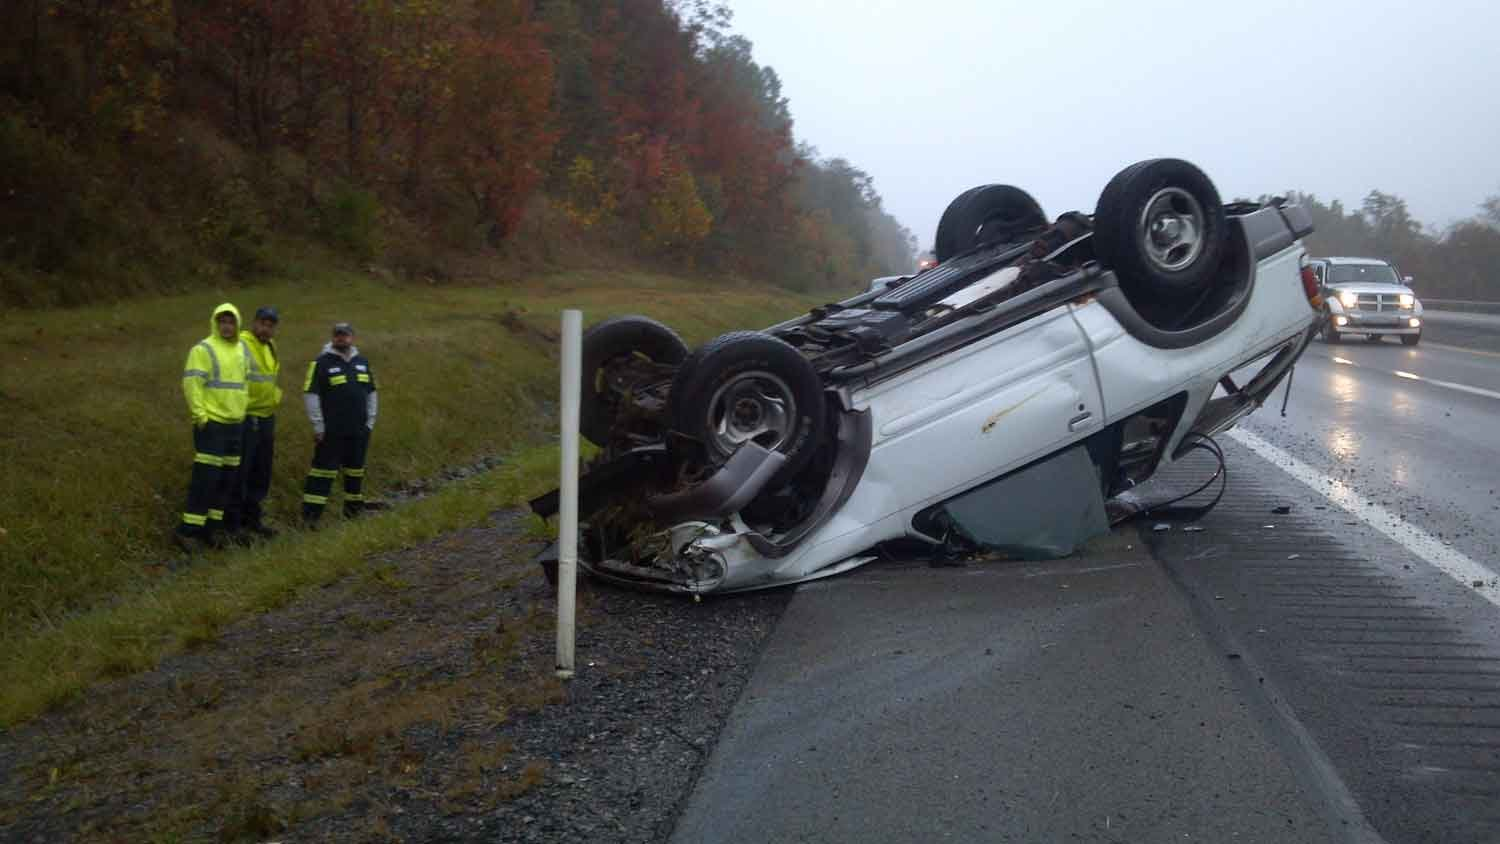 Only minor injuries are reported after an accident involving a deer on the West Virginia Turnpike (I-77)